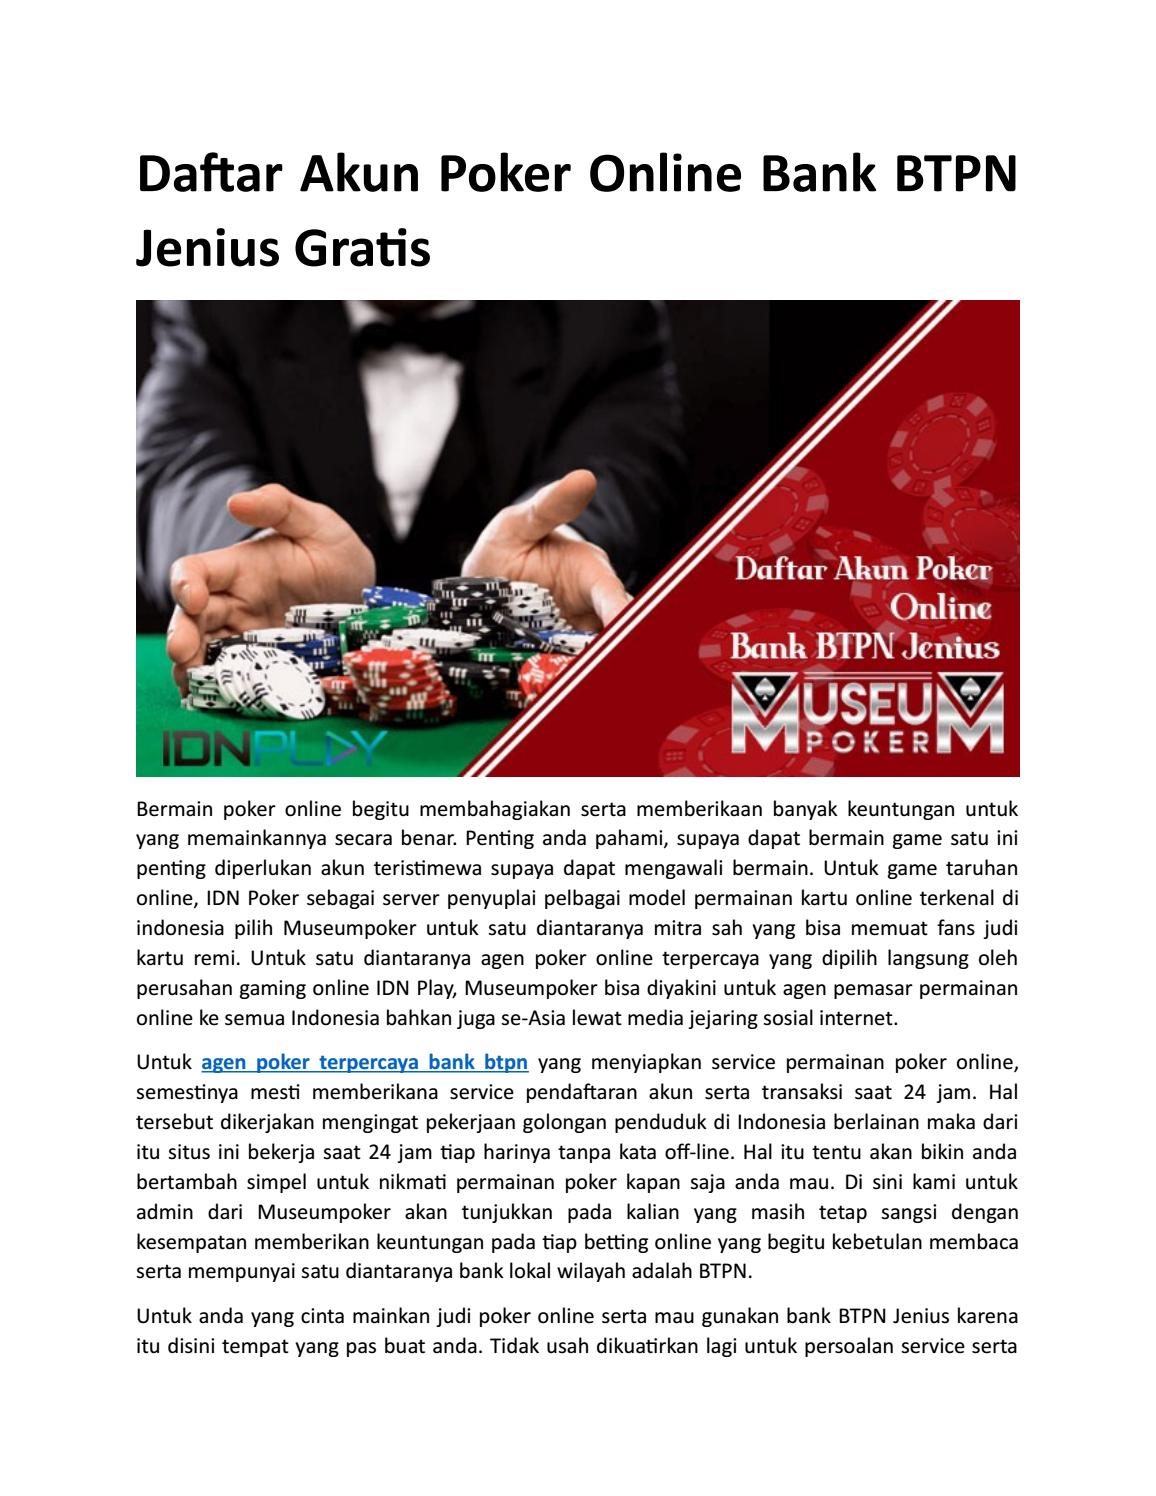 Daftar Akun Poker Online Bank Btpn Jenius Gratis By Calista Fiona Issuu